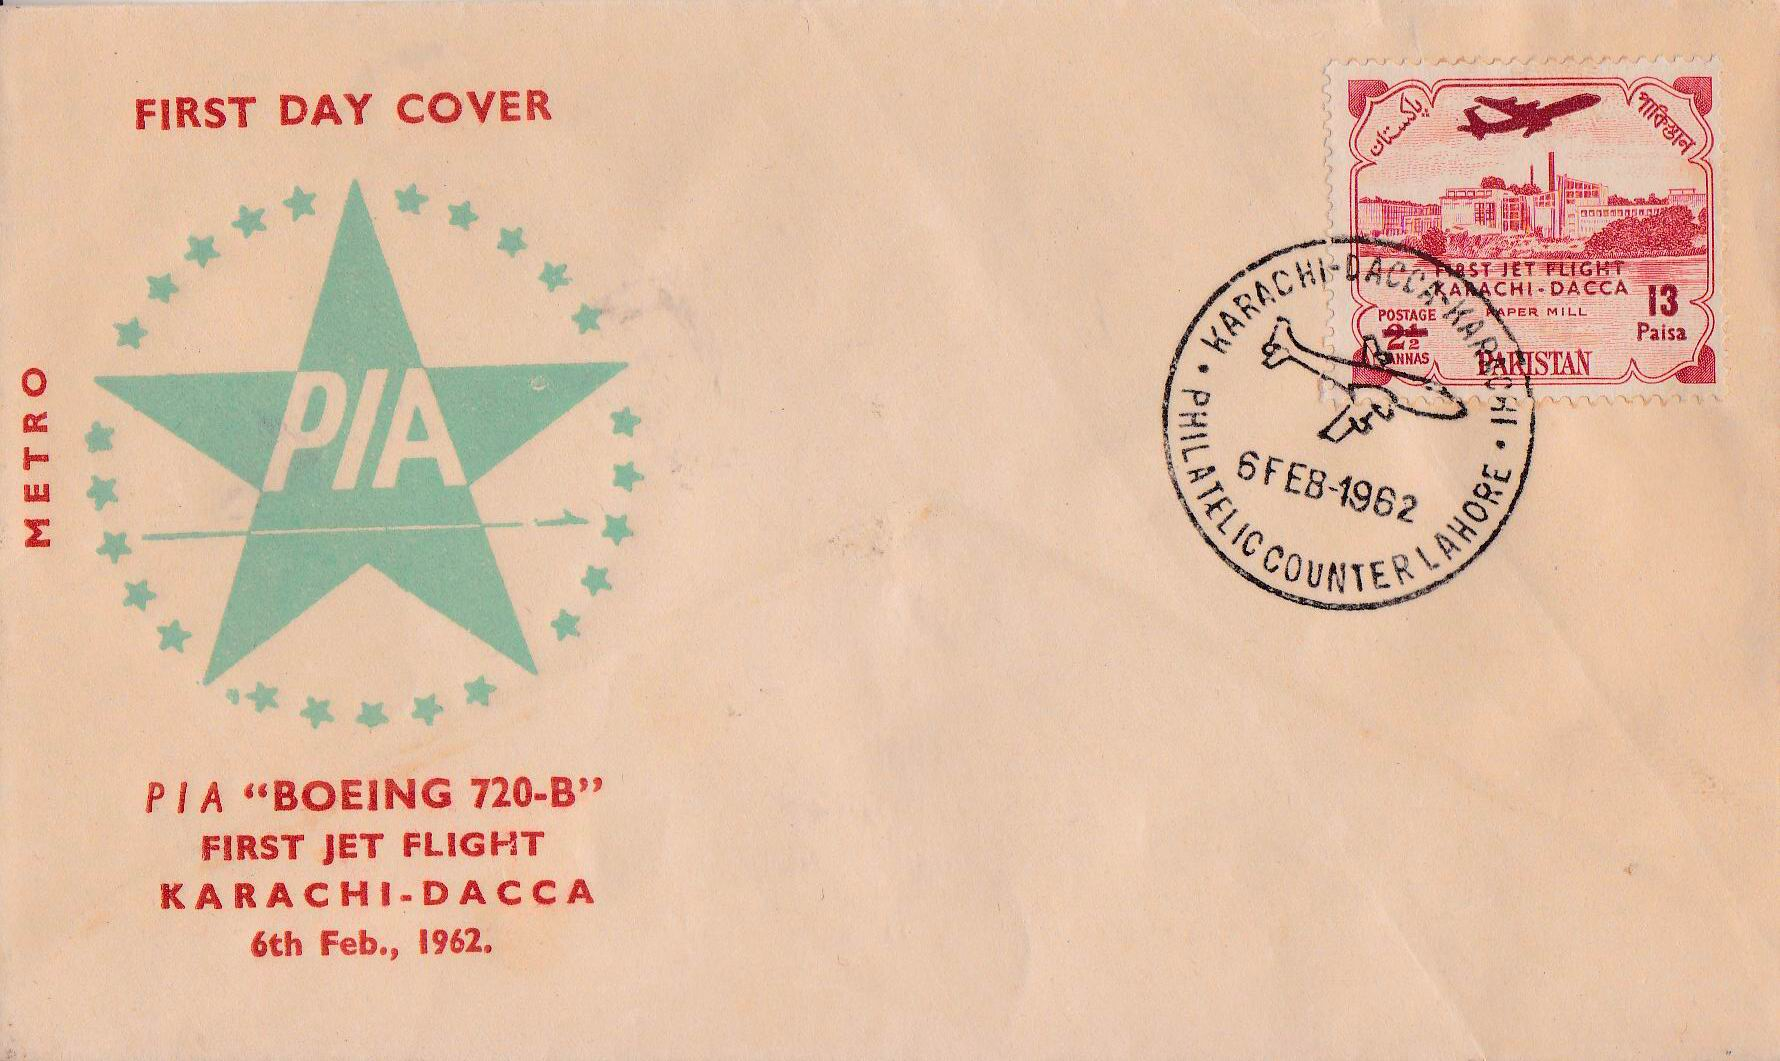 Pakistan Fdc 1962 PIA First Flight Karachi Dacca East Pakistan